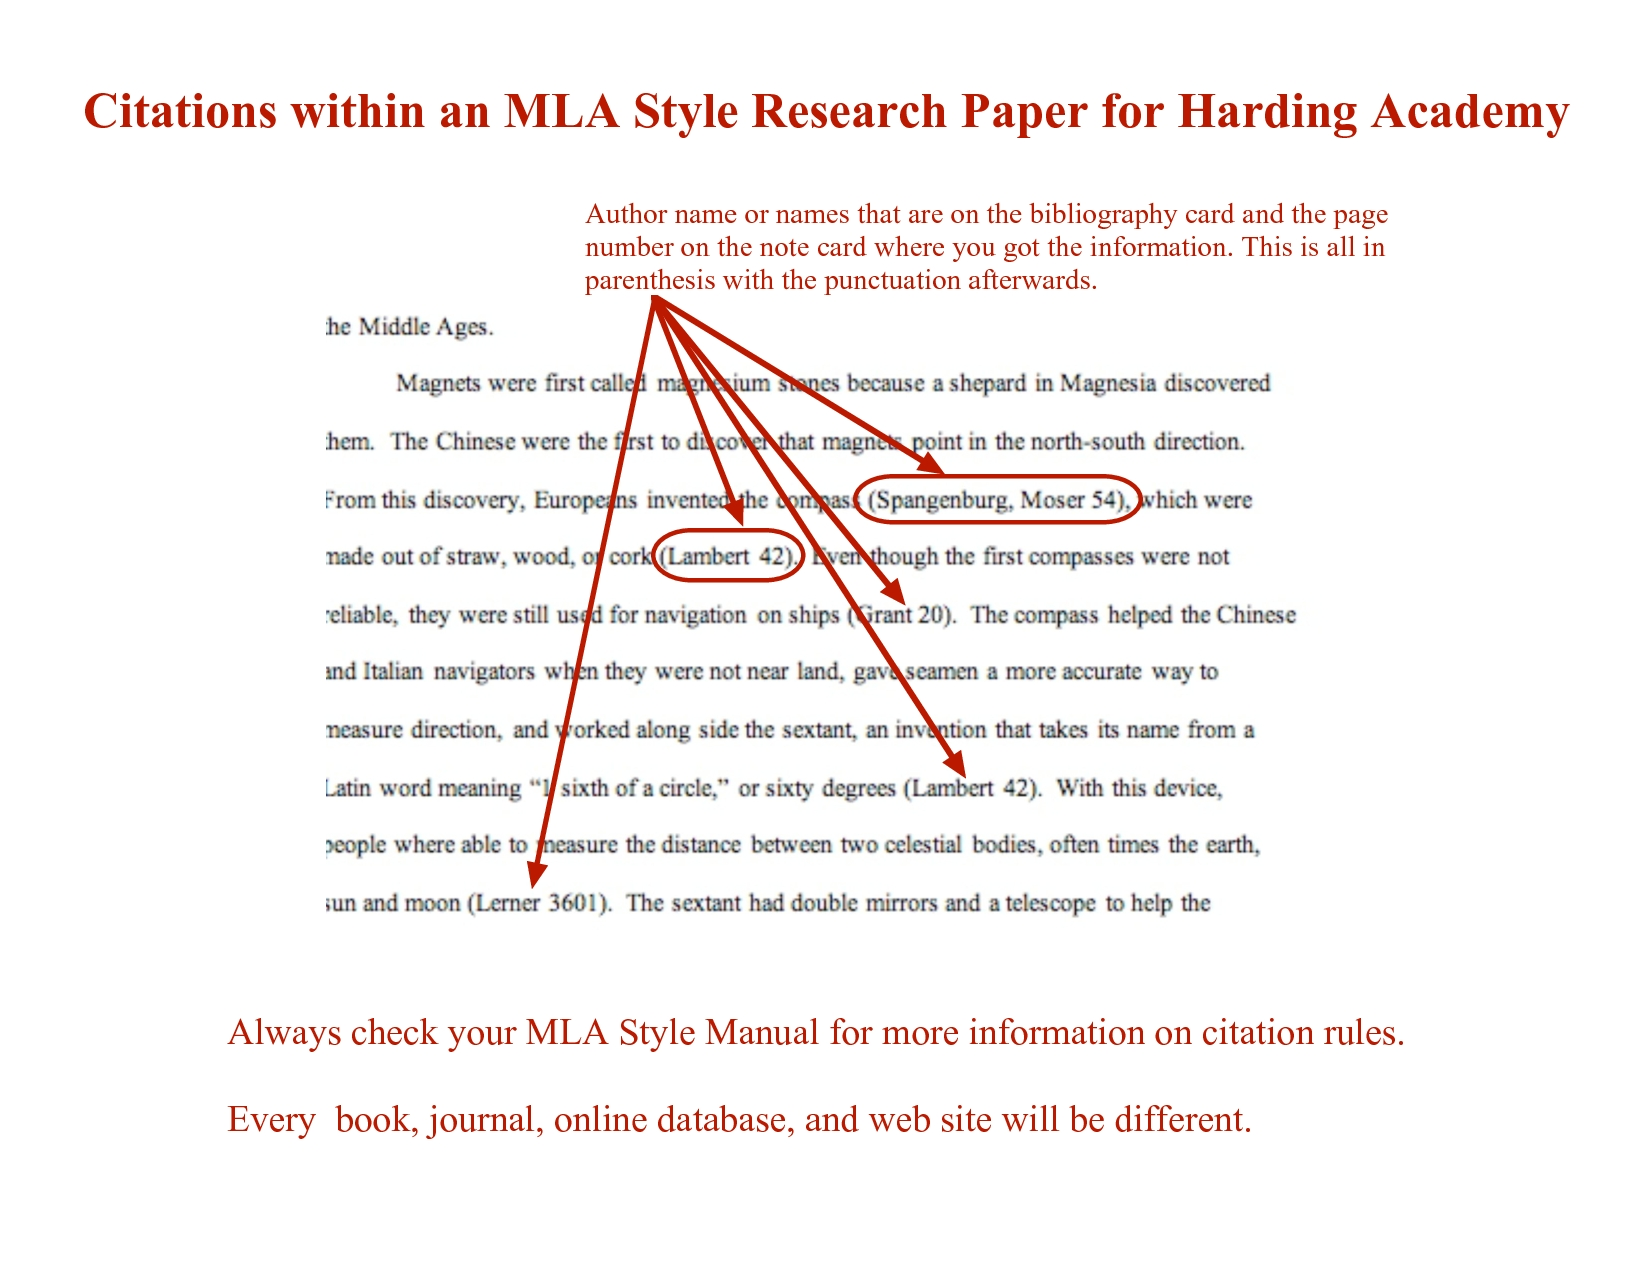 008 Essay Example Citing Sources In An How To Cite Citation Mla Twenty Hueandi Co Collection Of Solutions Quote From Website Stunning Research Pape Examples Essays Phenomenal Argumentative Expository College Full